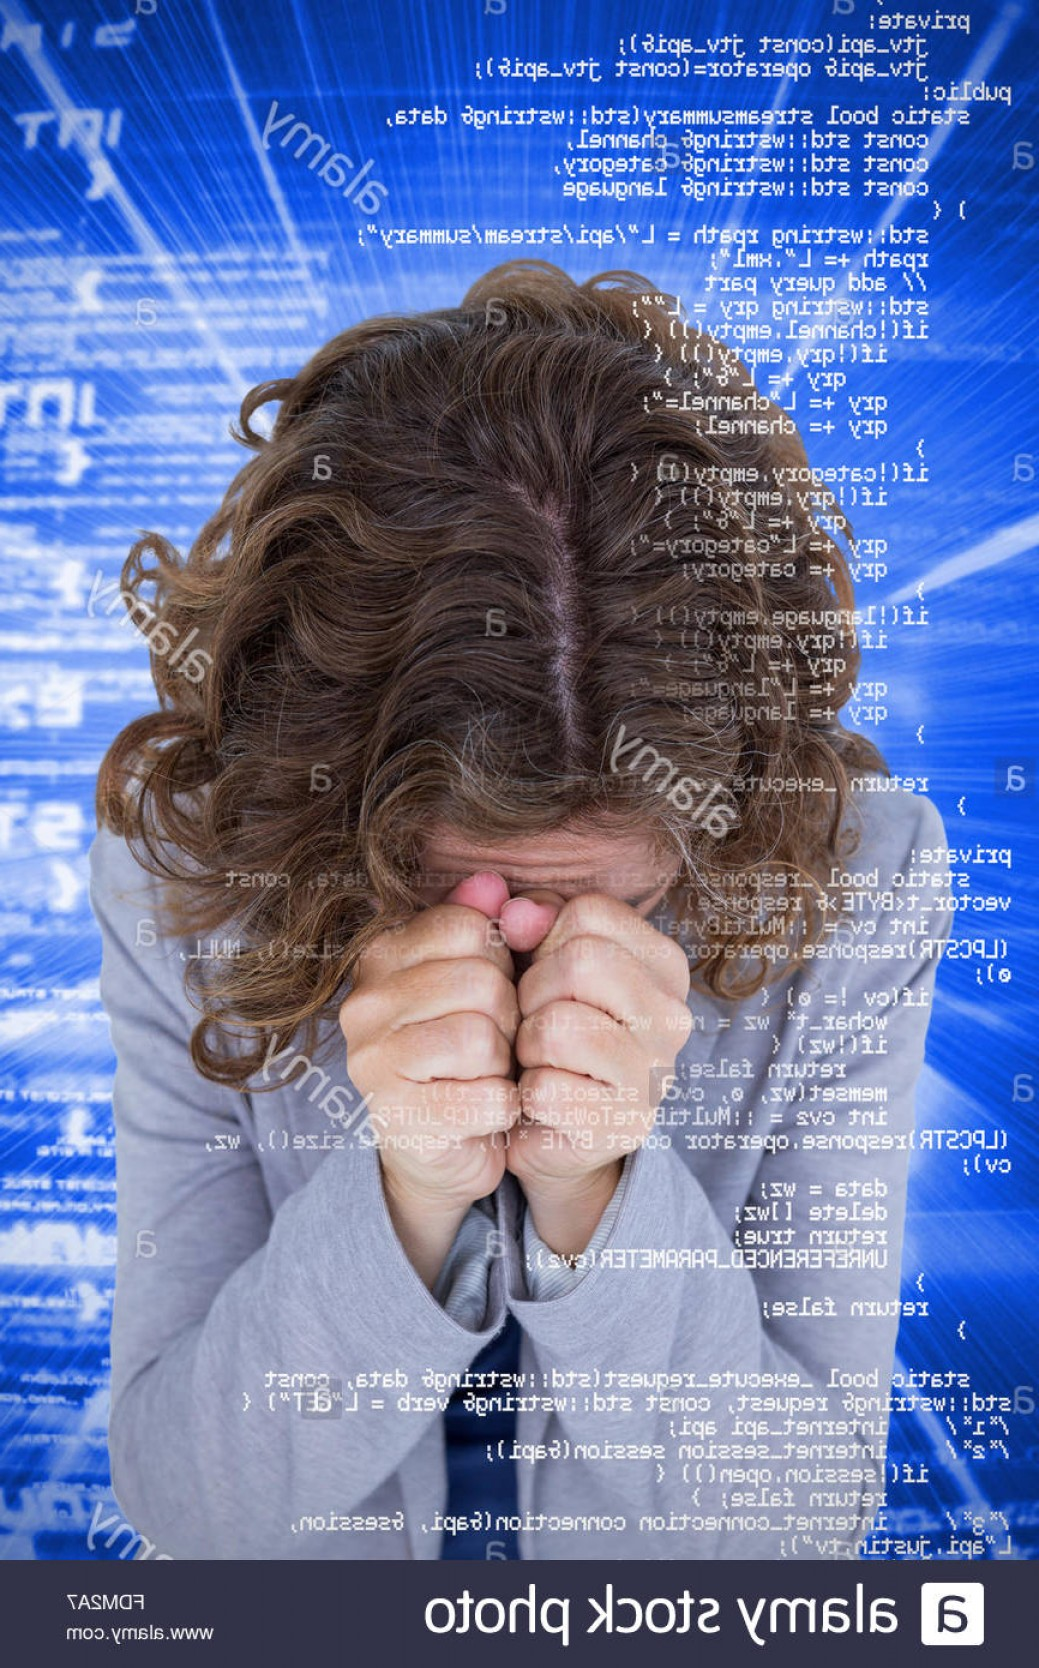 Wstring Vector: Stock Photo Composite Image Of Upset Woman With Hands Covering Face